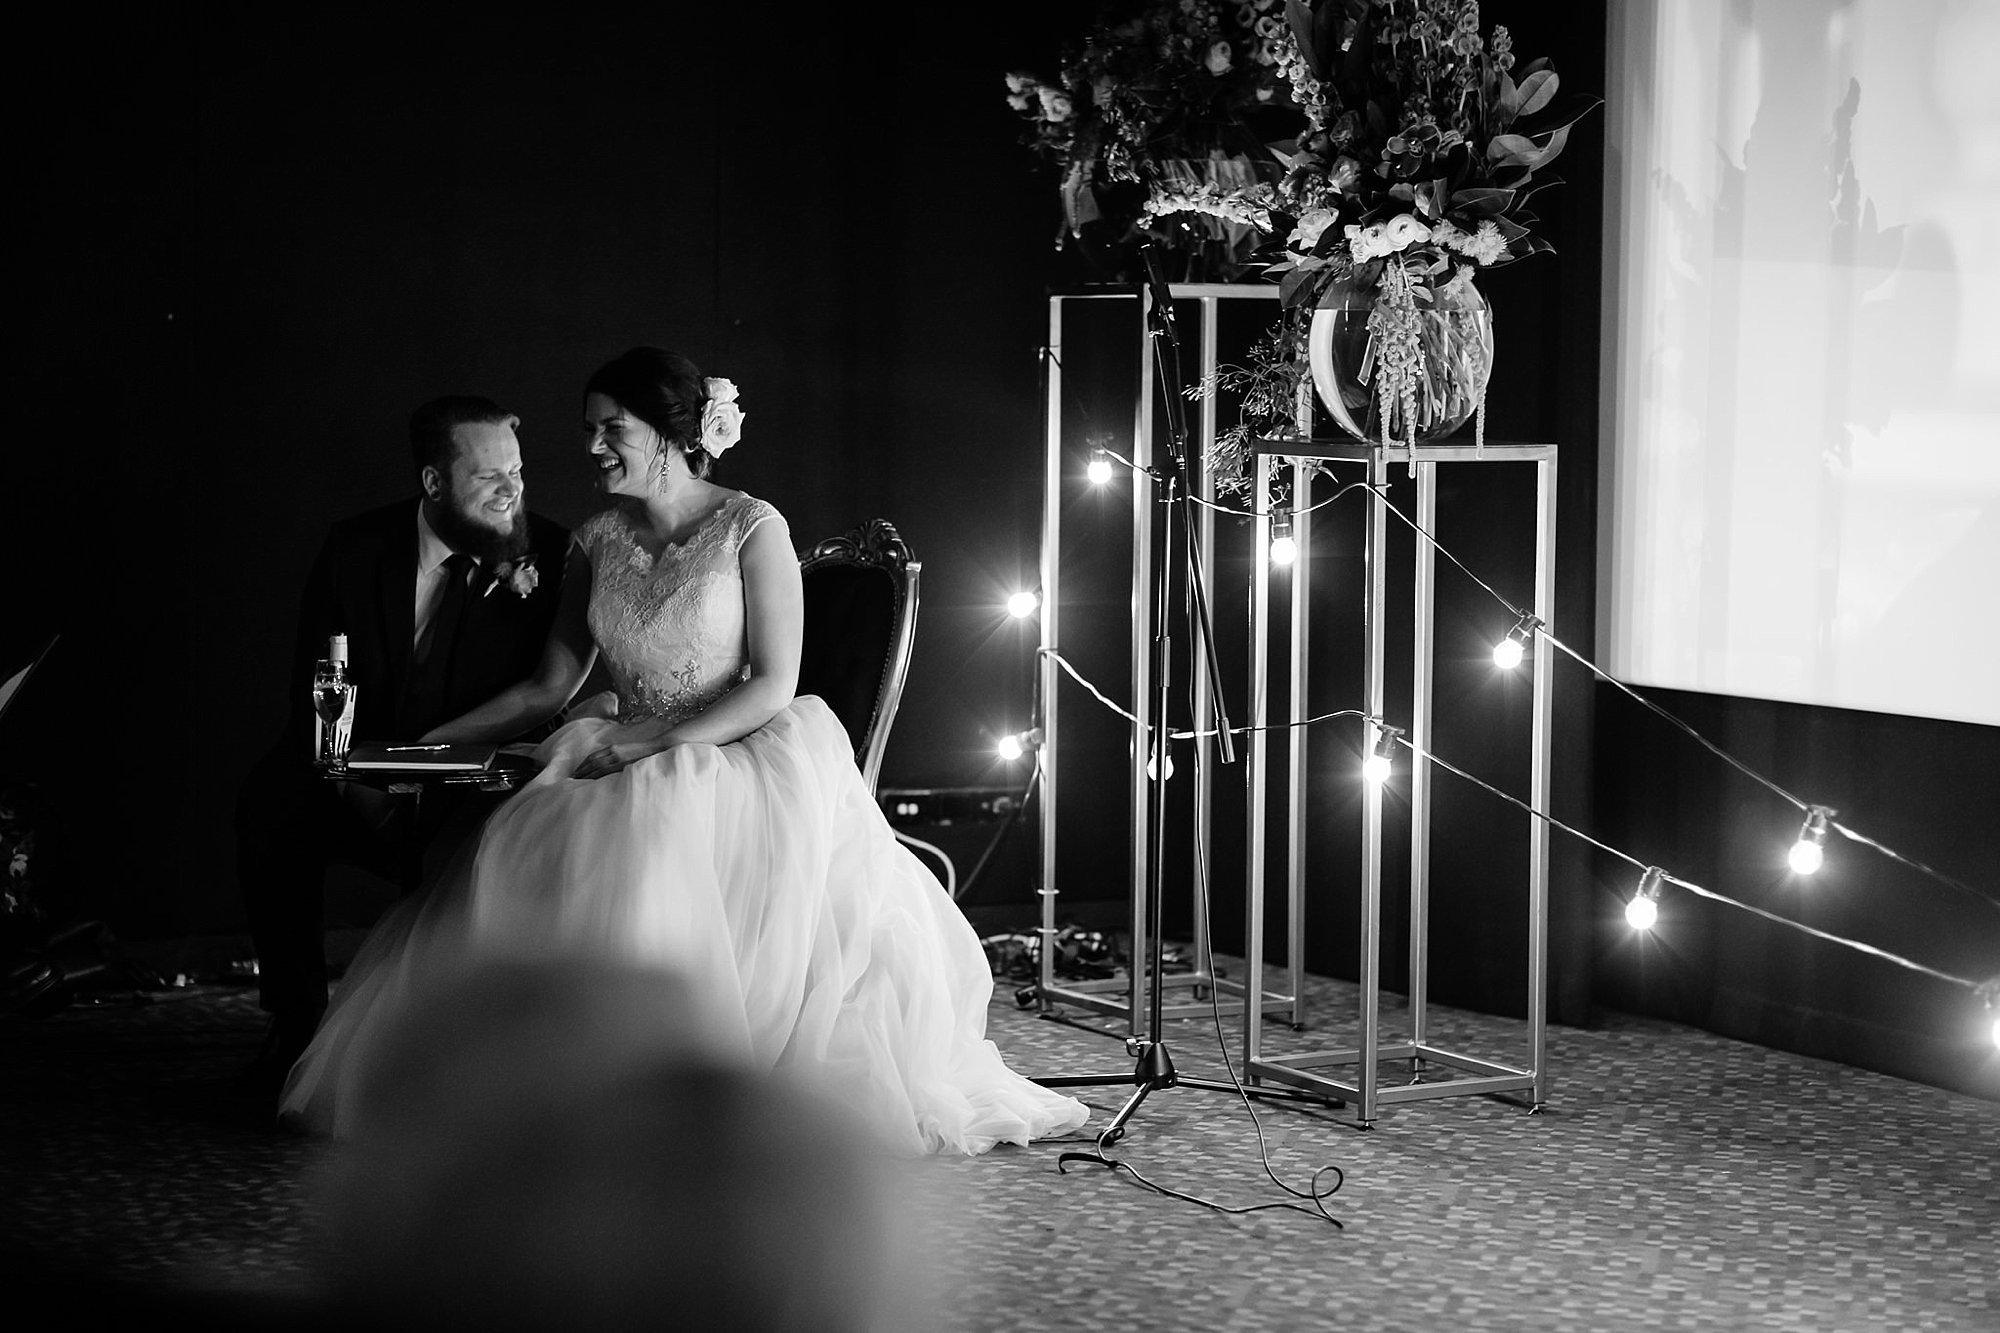 Keepsakephoto by the Keeffes,ACT wedding photographer,ACT weddings,Canberra Wedding Photographer,Canberra Wedding Photography,canberra weddings,2017 weddings,Canberra Photography,Canberra Portrait Photography,